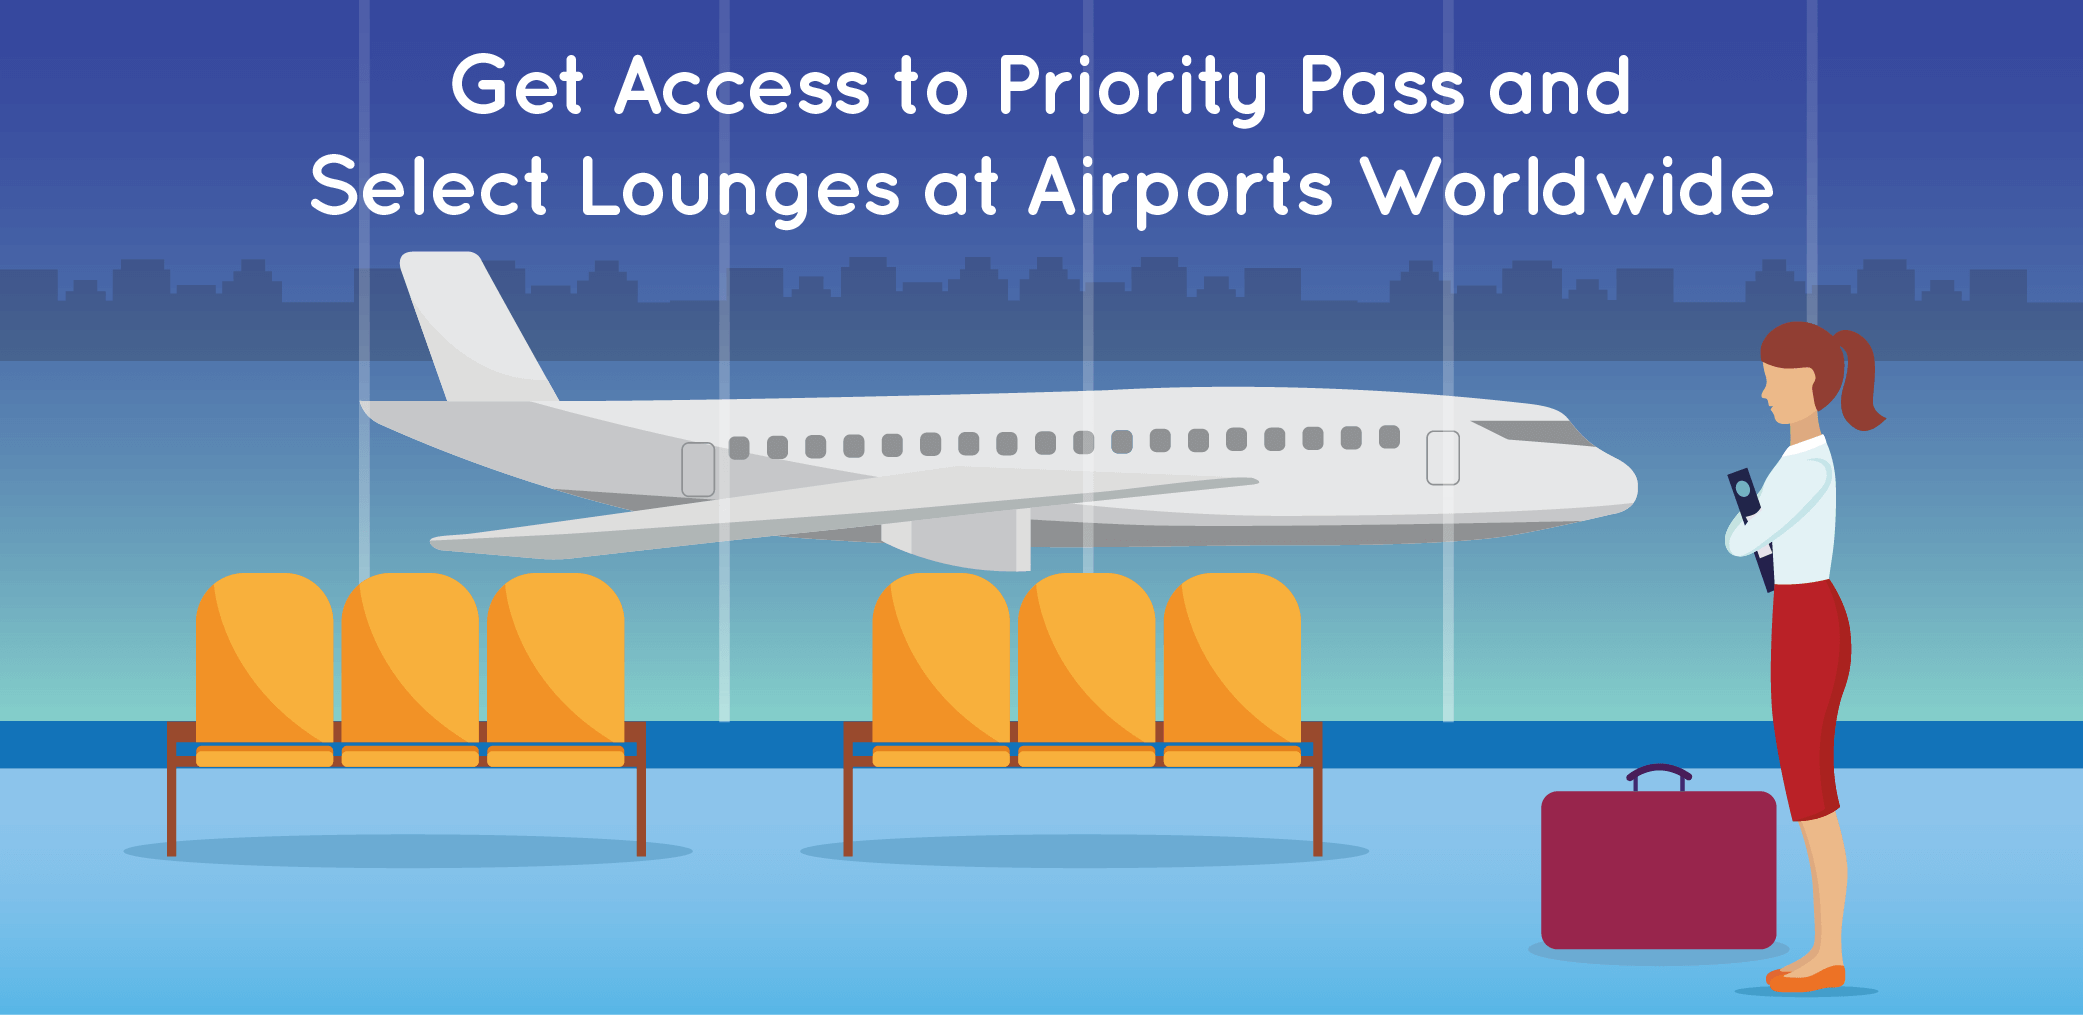 Get Access to Priority Pass